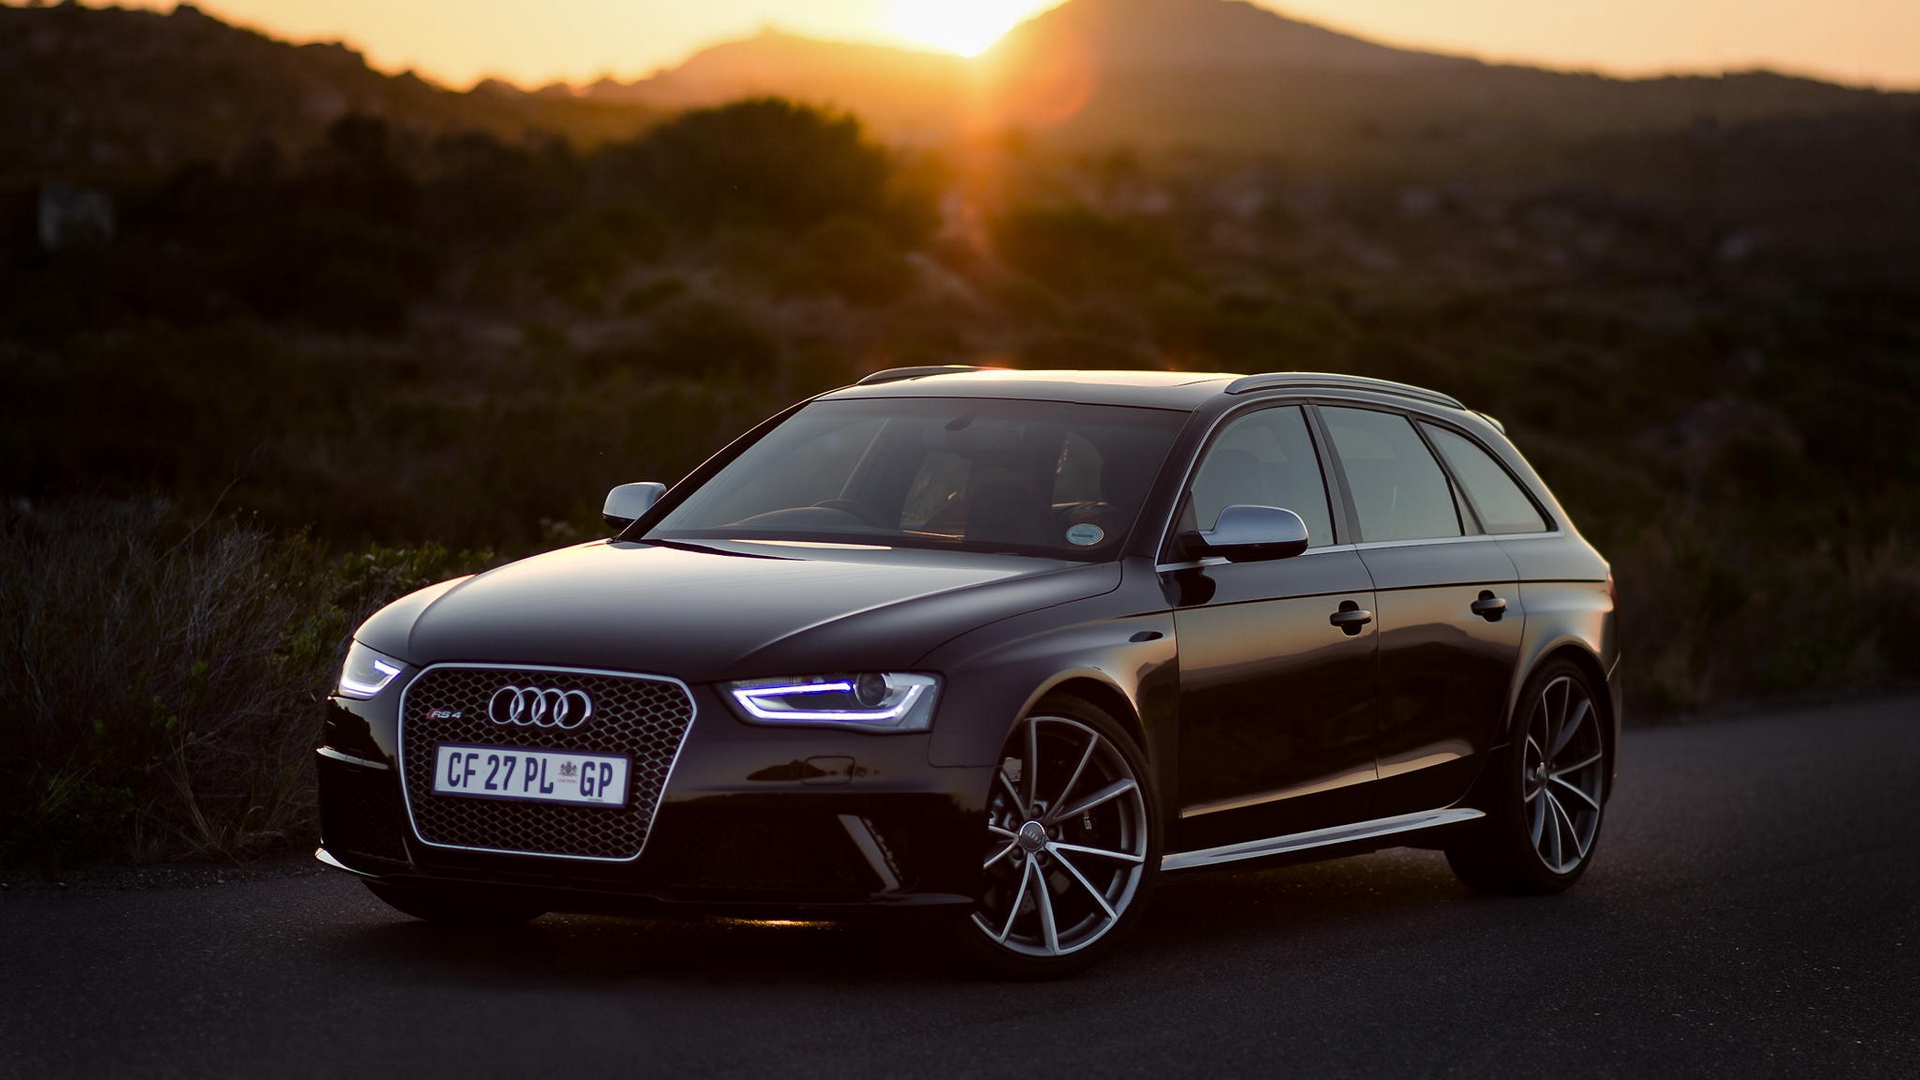 Download wallpapers 1920x1080 audi, rs4, side view, black, sunset